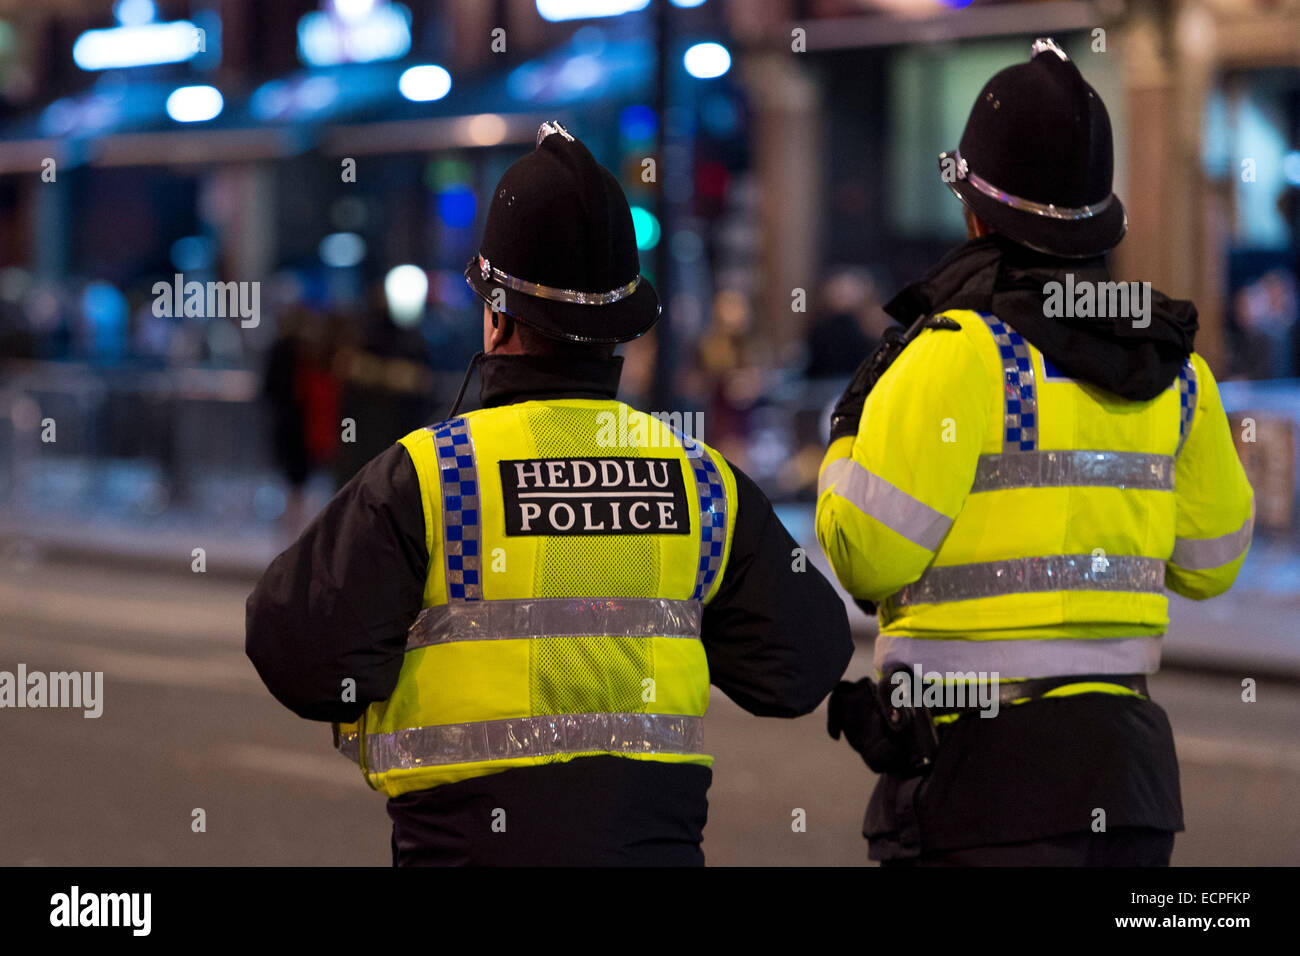 Police officers on patrol in Cardiff City centre at night. Stock Photo